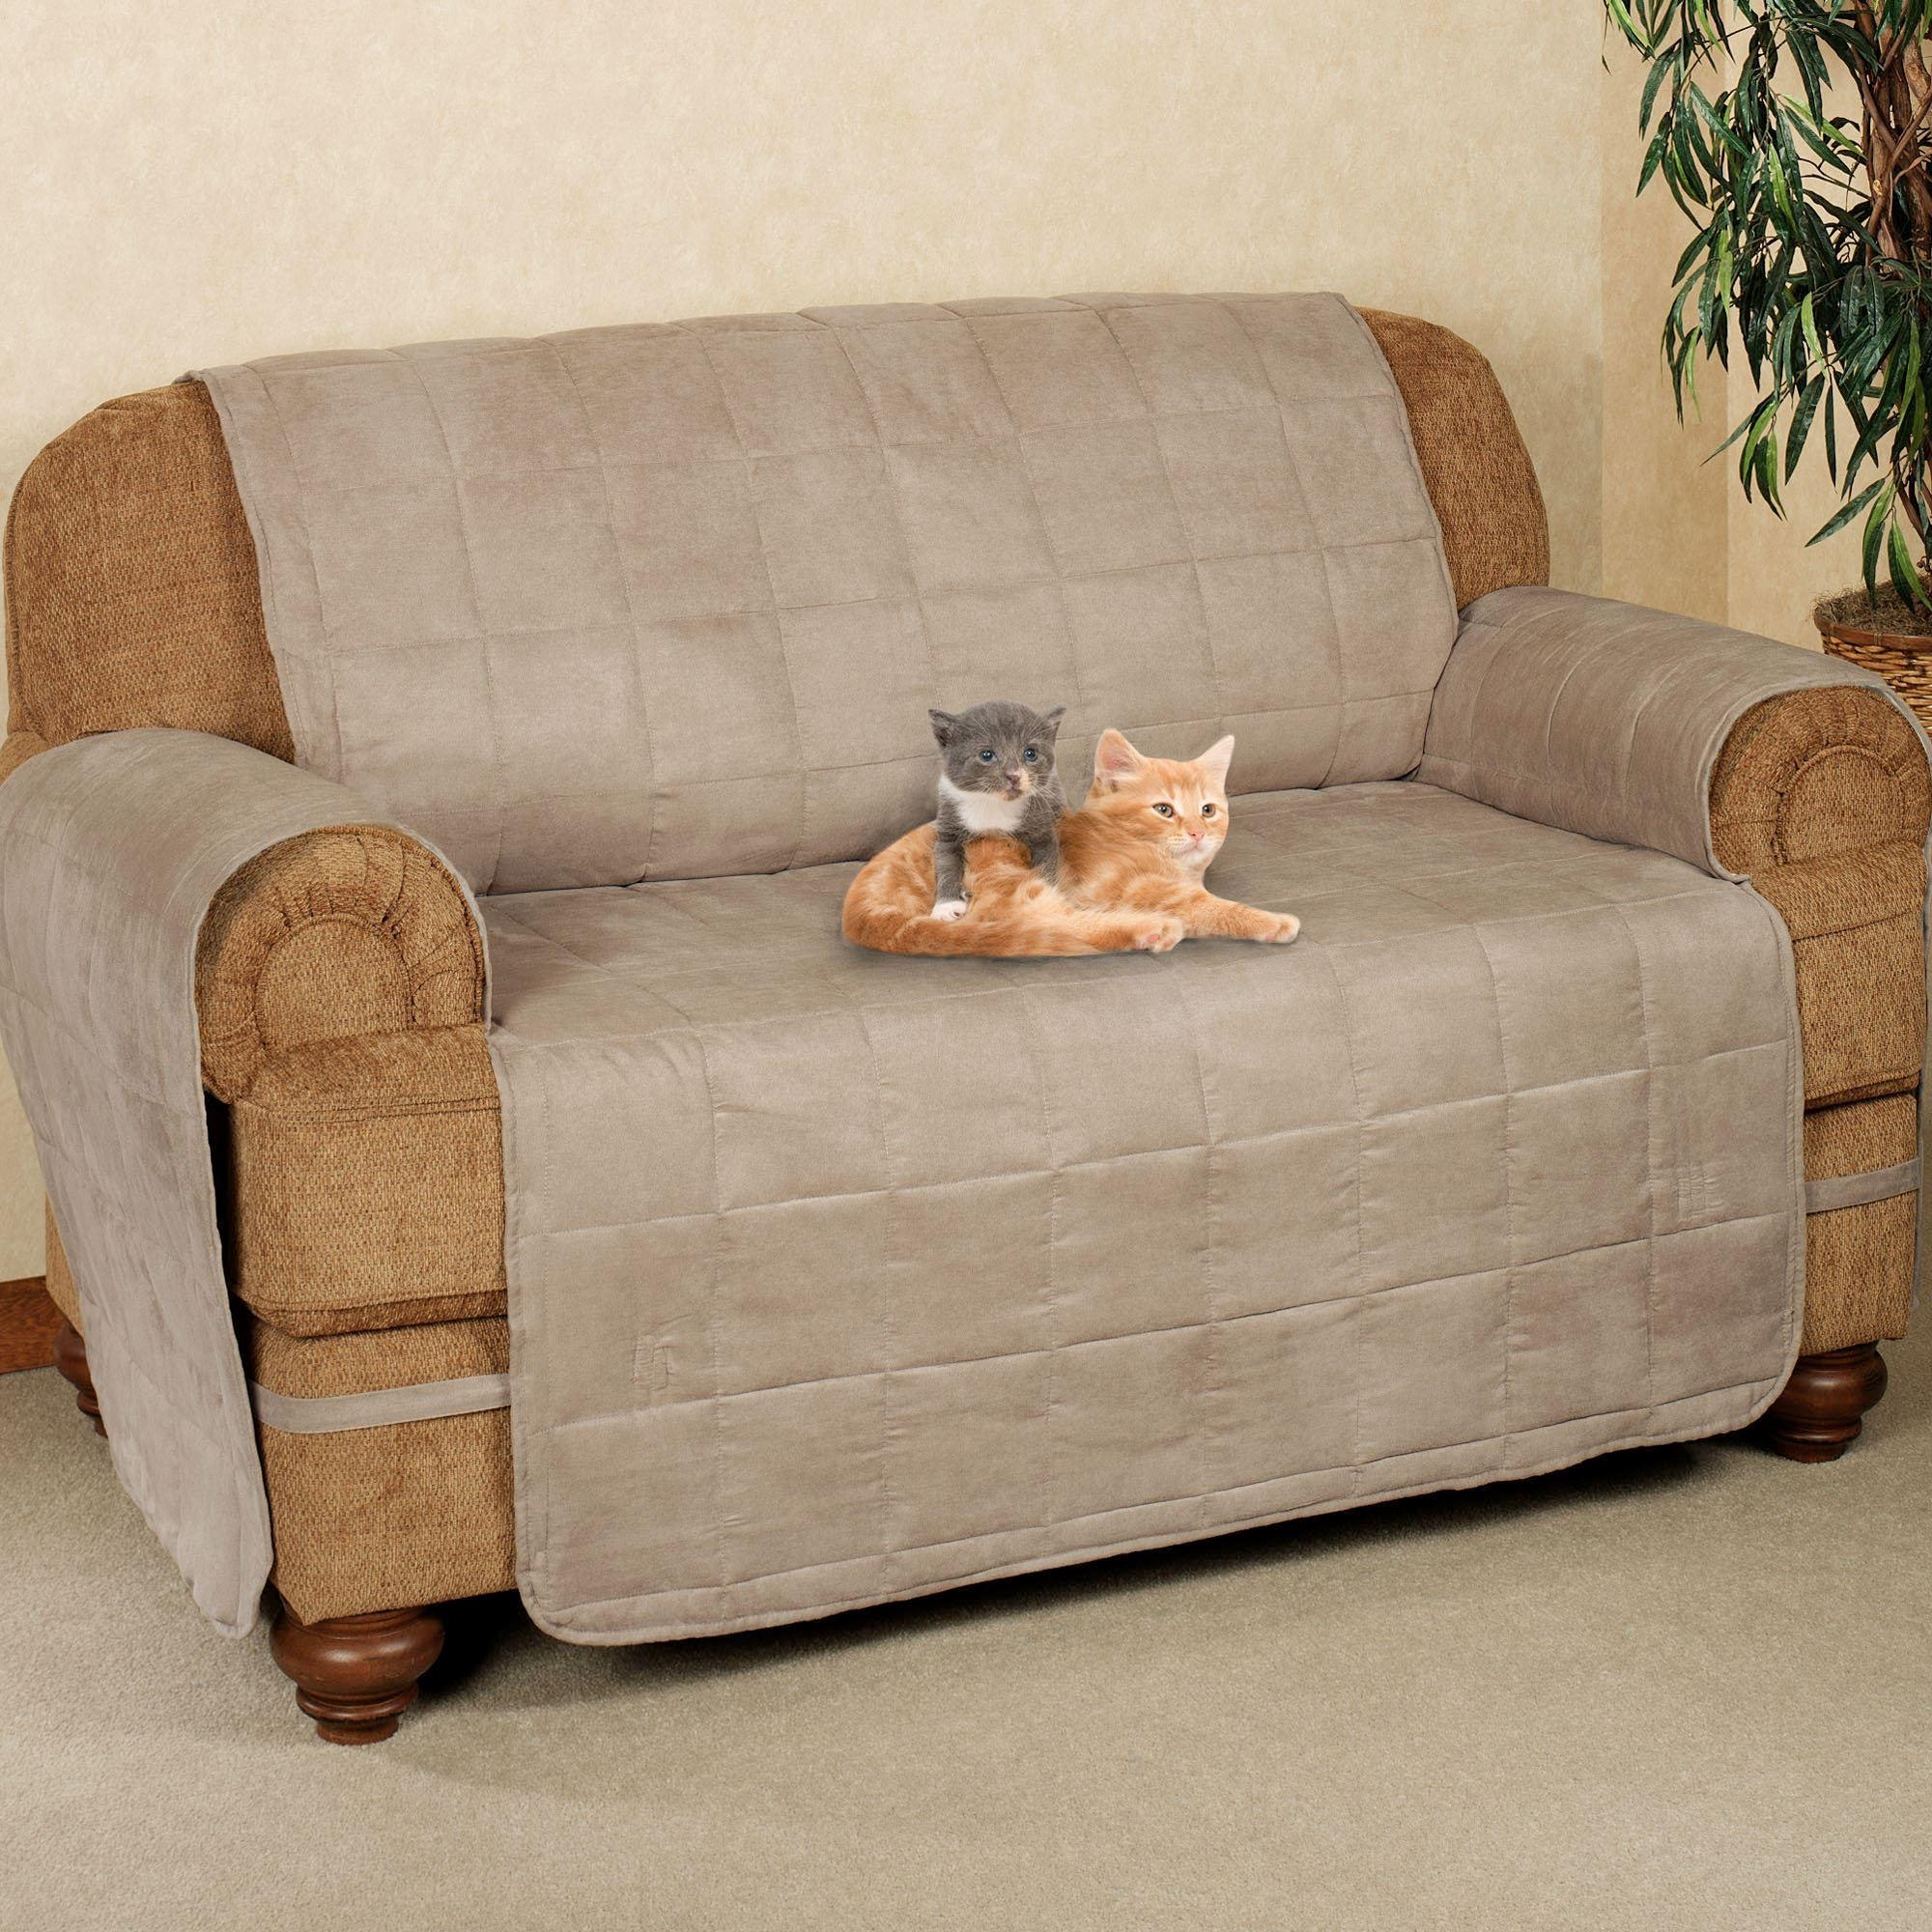 Ultimate Pet Furniture Protectors With Straps With Regard To Sofa And Loveseat Covers (Image 20 of 20)